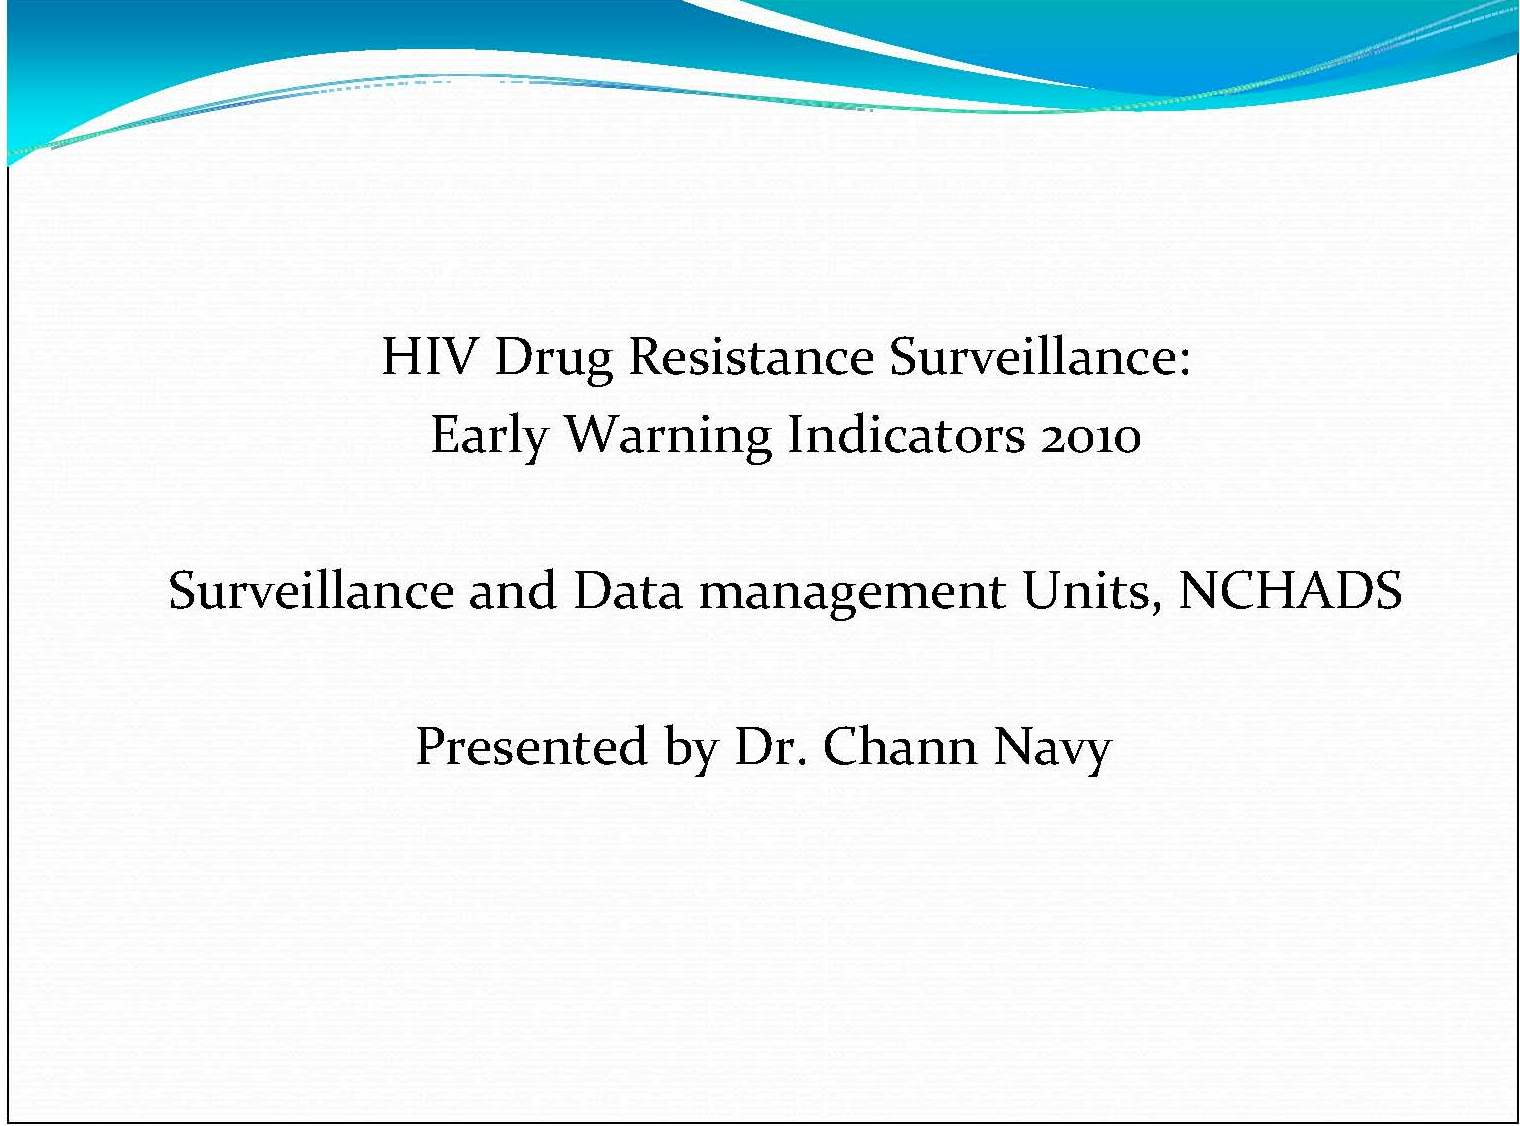 HIV drug resistance surveillance: early warning indicators 2010, NCHADS